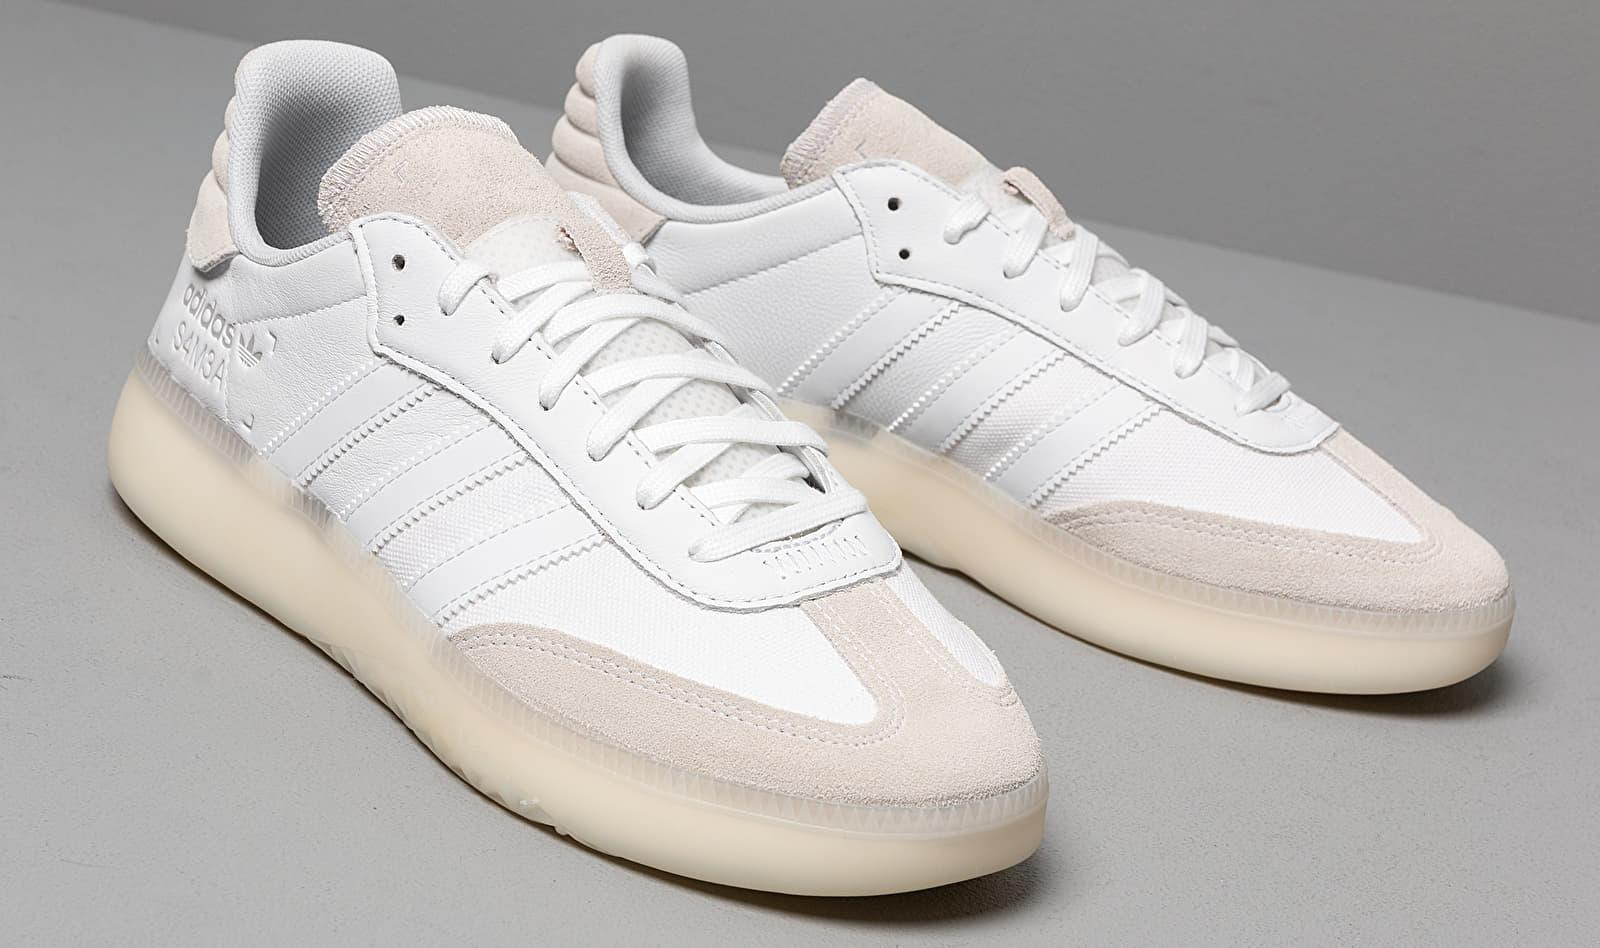 Adidas Samba Rm Ftw White/ Ftw White/ Grey Two